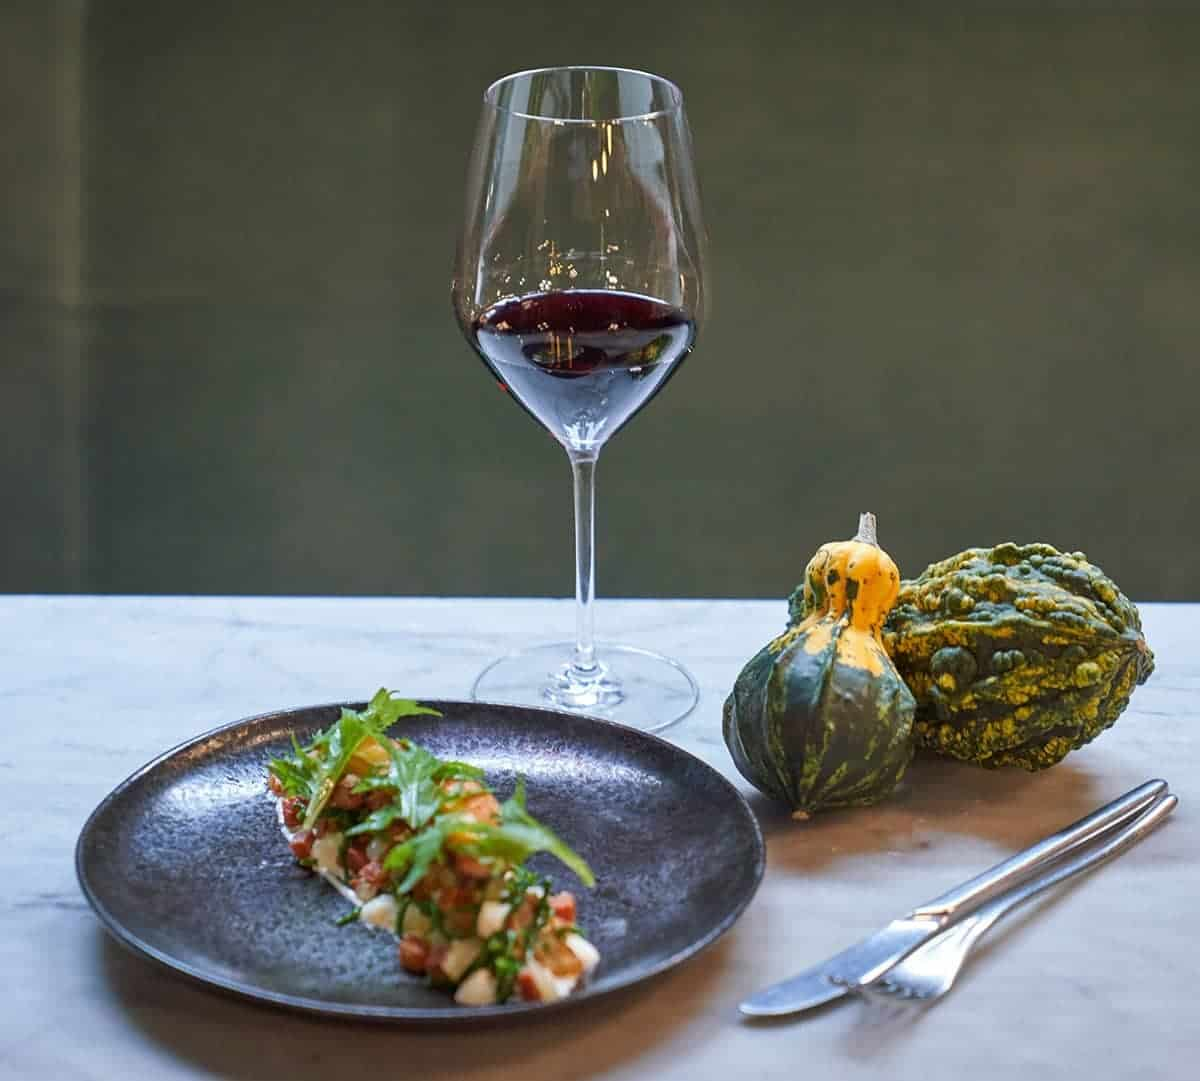 A glass of red wine shown with a plate of food and a couple gourds.